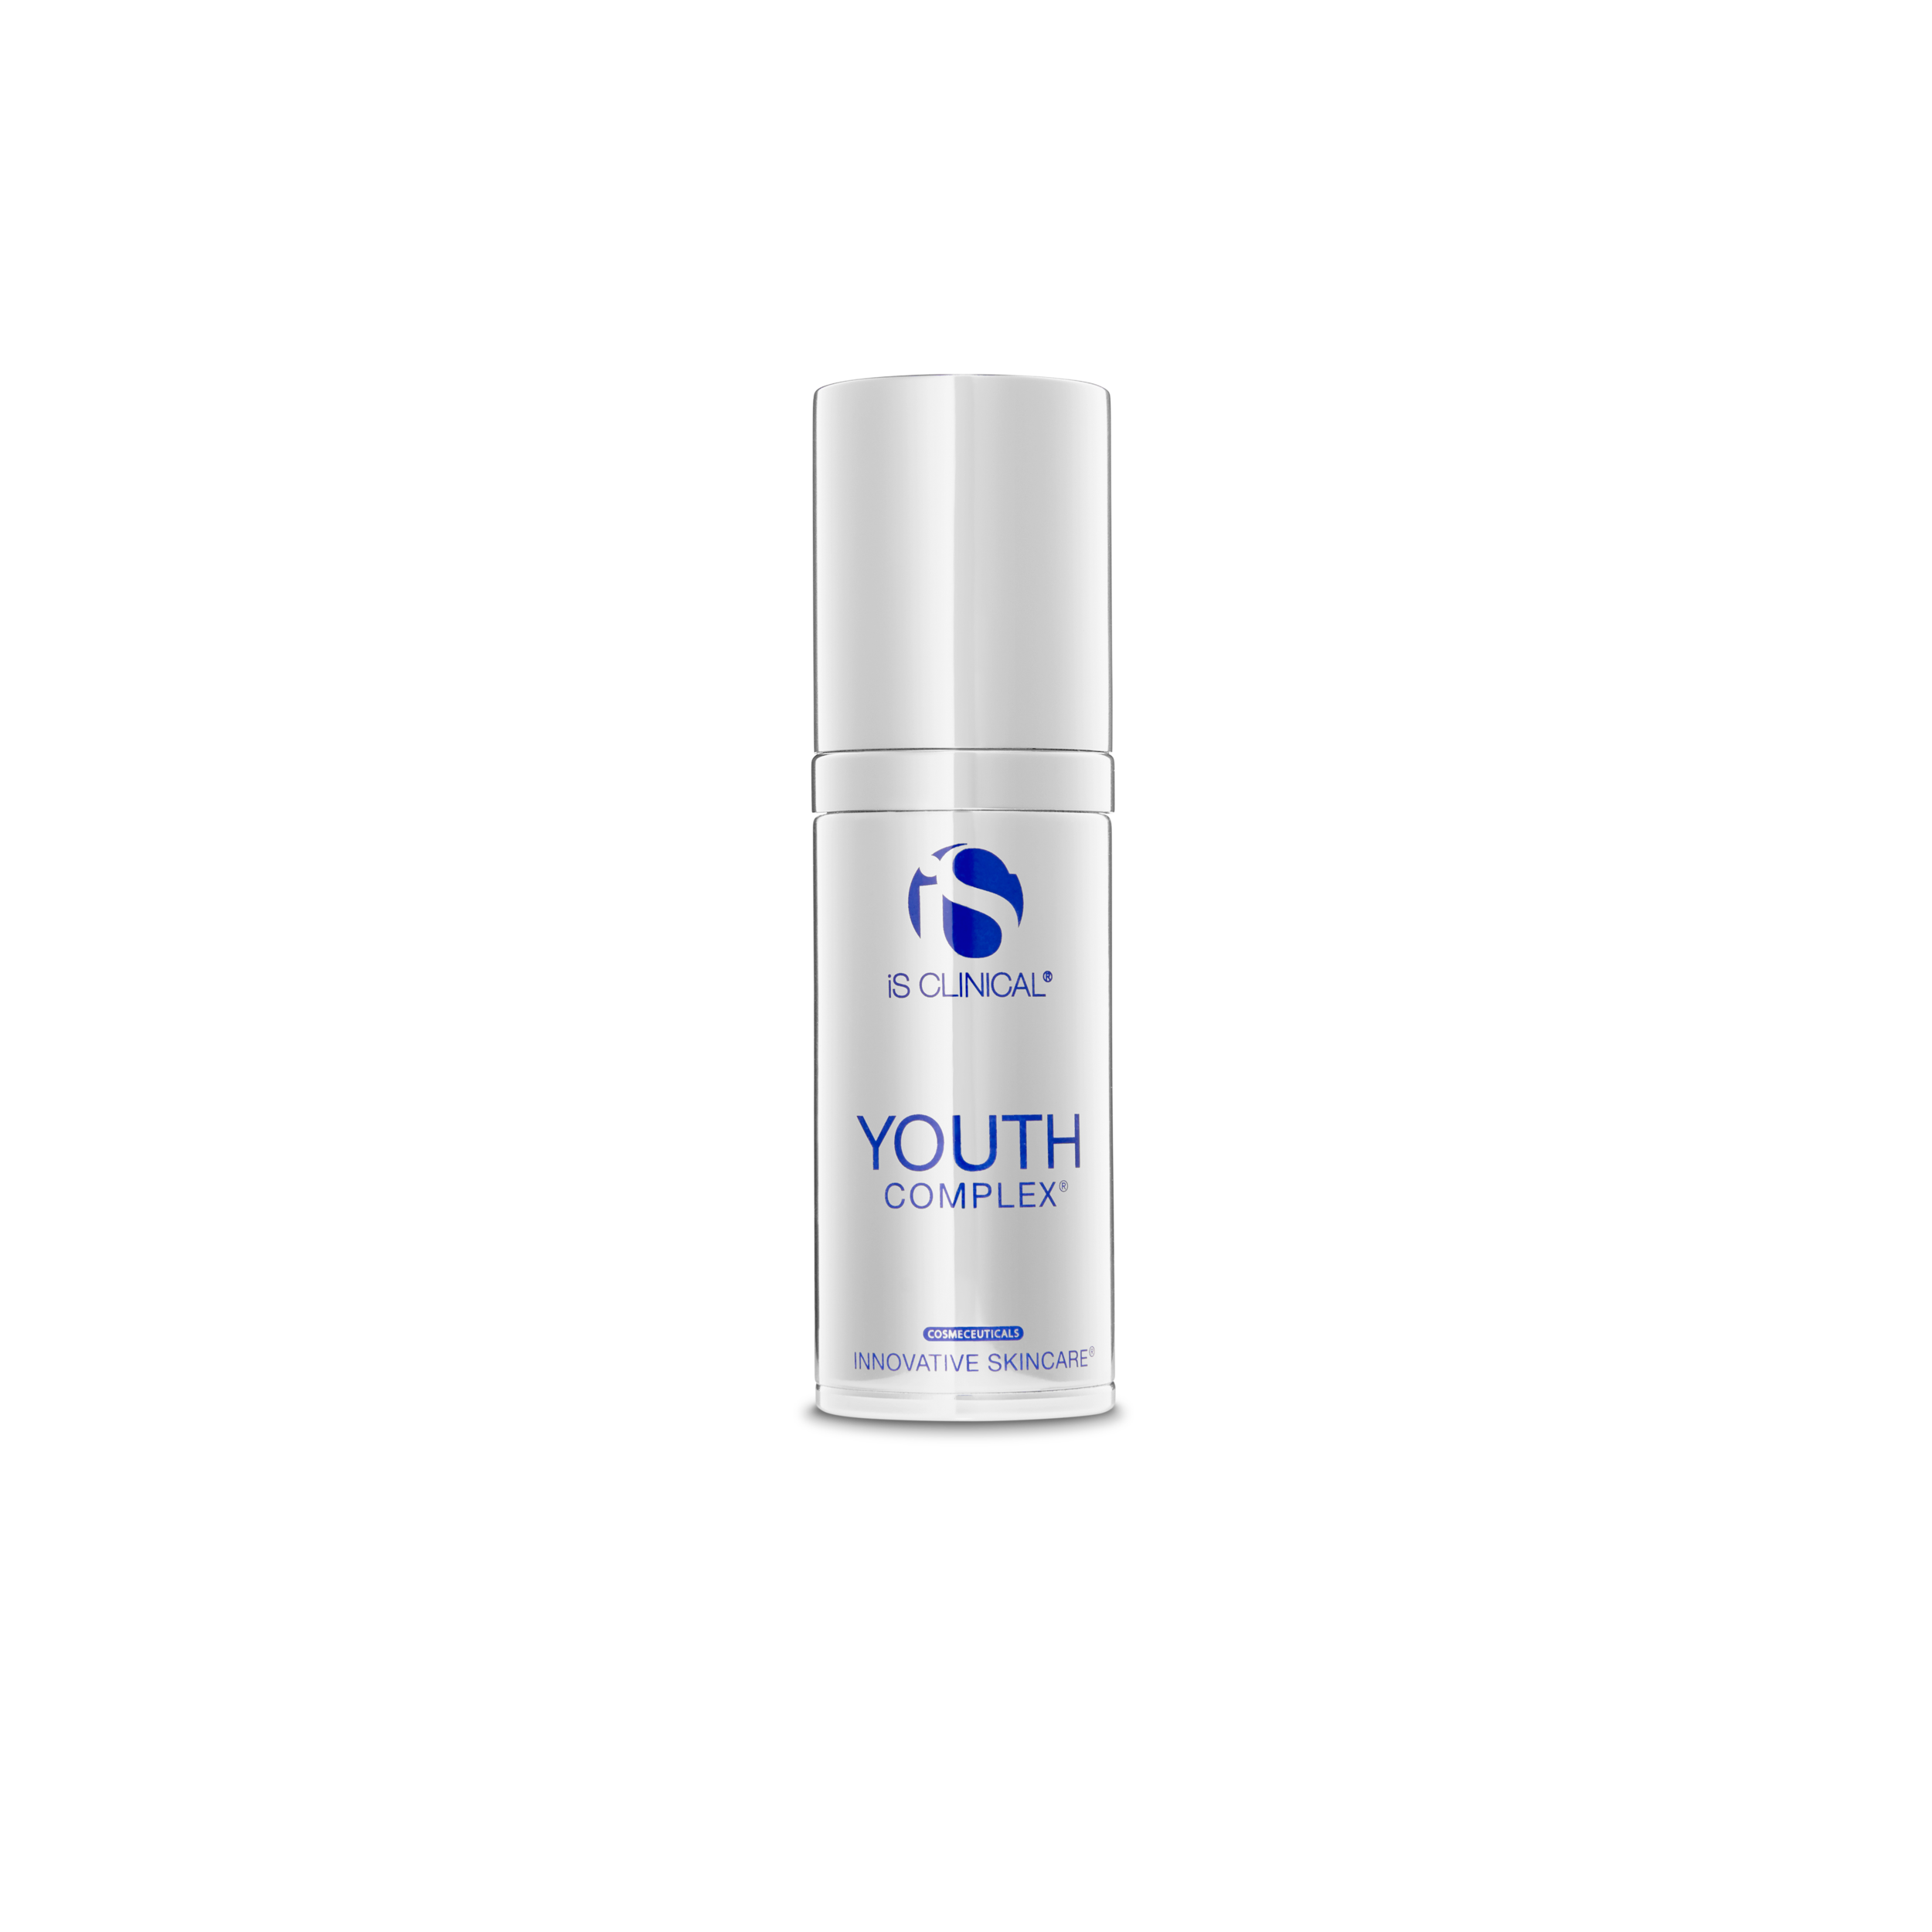 """YOUTH COMPLEX is the first cosmeceutical formulation to offer immediate, intermediate, and long-term visible improvements to aging skin. This breakthrough formula is a unique blend of potent antioxidants, innovative natural hydrators, and our exclusive bio-complex that addresses targeted aging phenomena with clinical precision. YOUTH COMPLEX provides rapid initial hydration for visible """"plumping"""" of fine lines and wrinkles, promotes controlled exfoliation, and is clinically proven to support the foundation of healthy skin.  BENEFITS • Reduces the appearance of fine lines and wrinkles • Smoothes and softens • Visibly firms and tightens • Provides immediate, intermediate, and long-term visible improvements • Provides antioxidant protection • Paraben-free"""